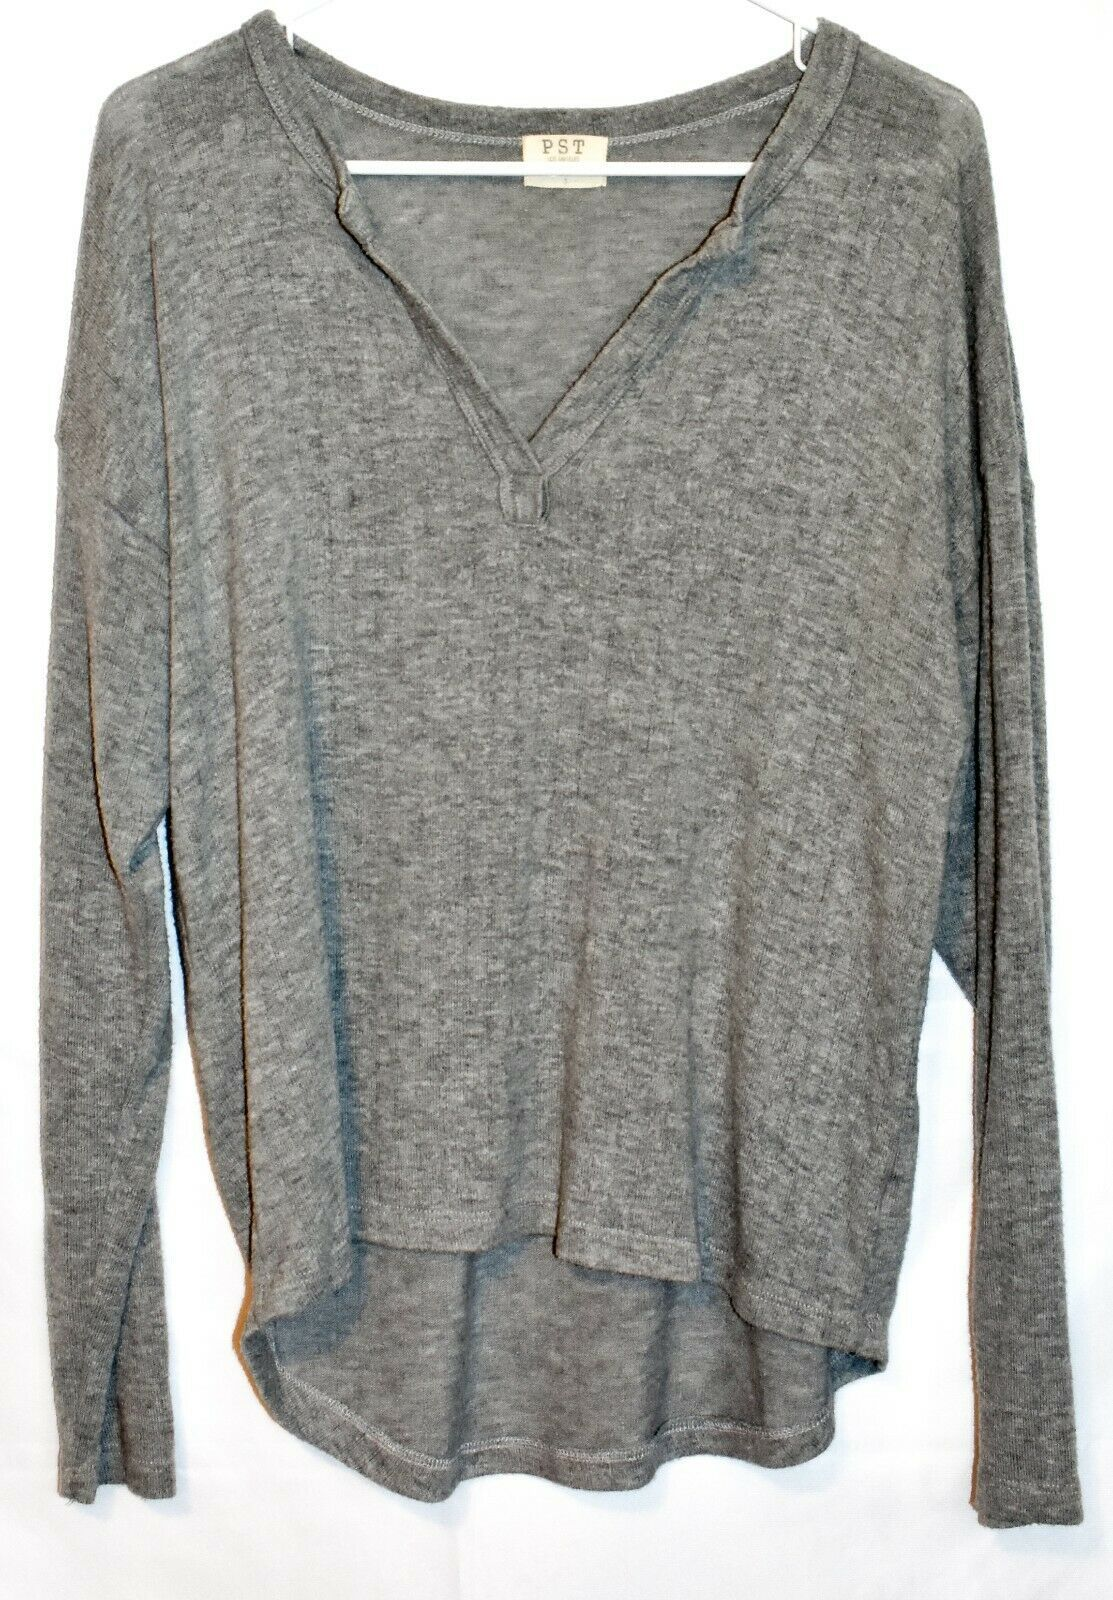 PST by Project Social T Women's Gray Pullover V-Neck Oversized Knit Sweater S